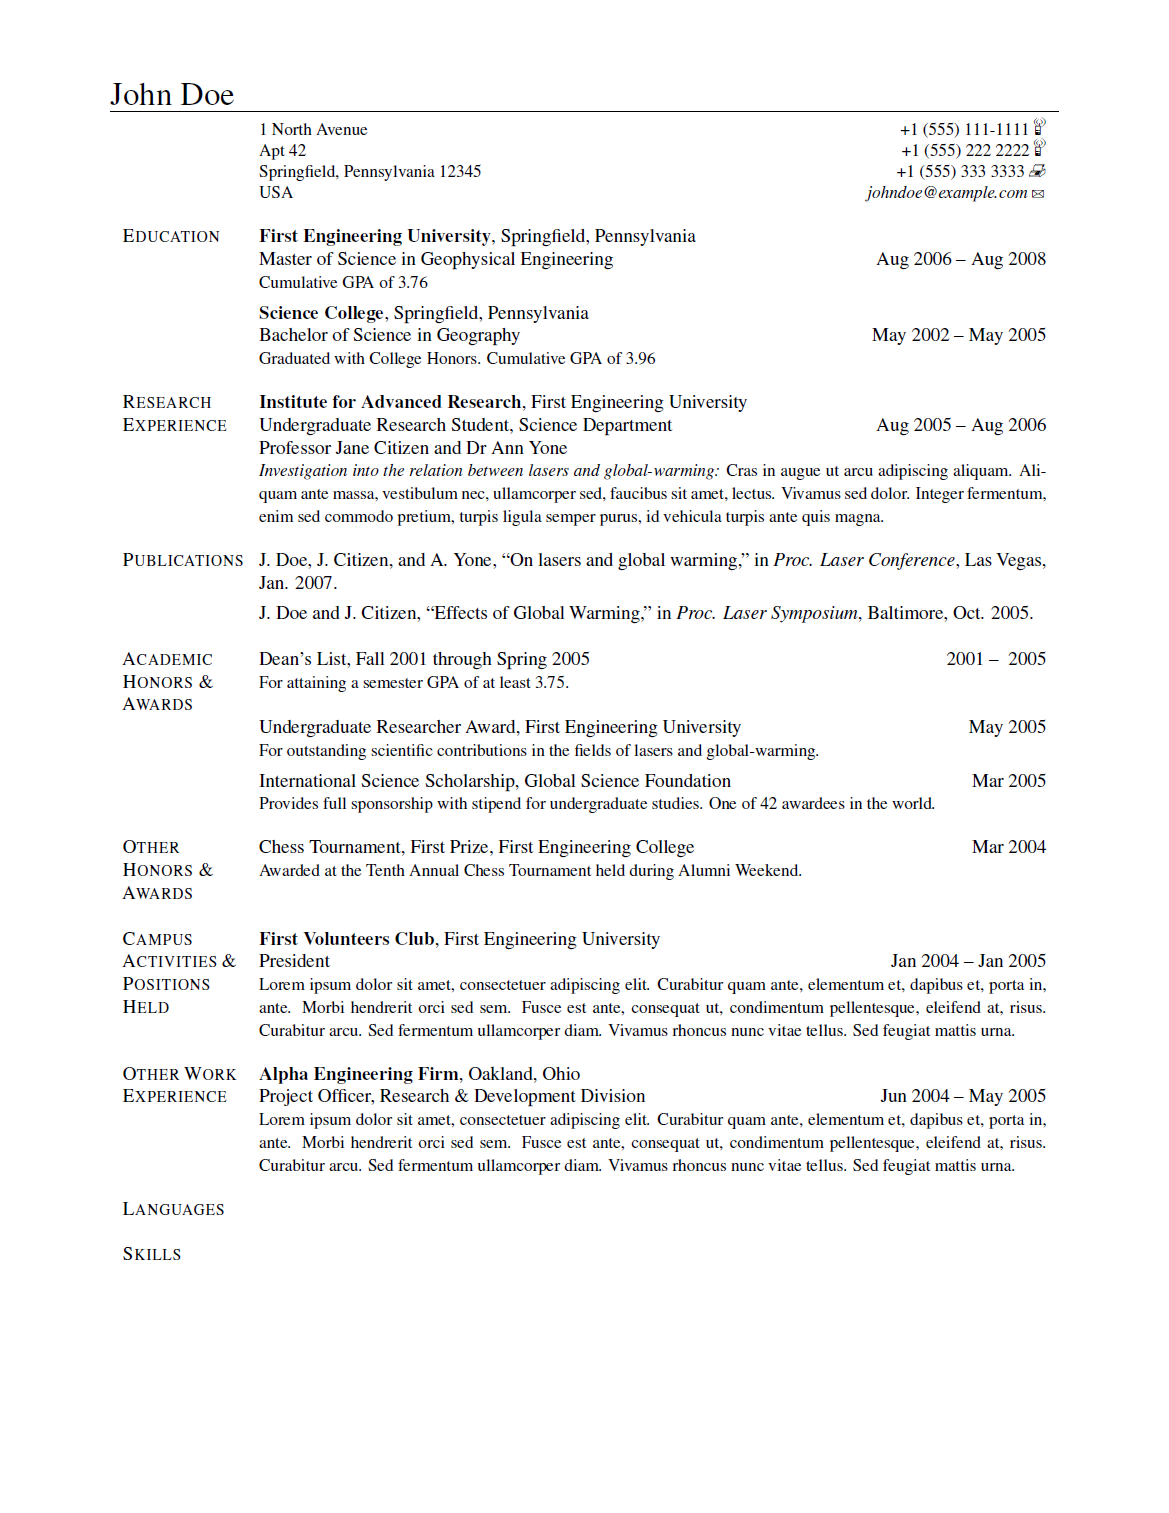 LaTeX resume document sample